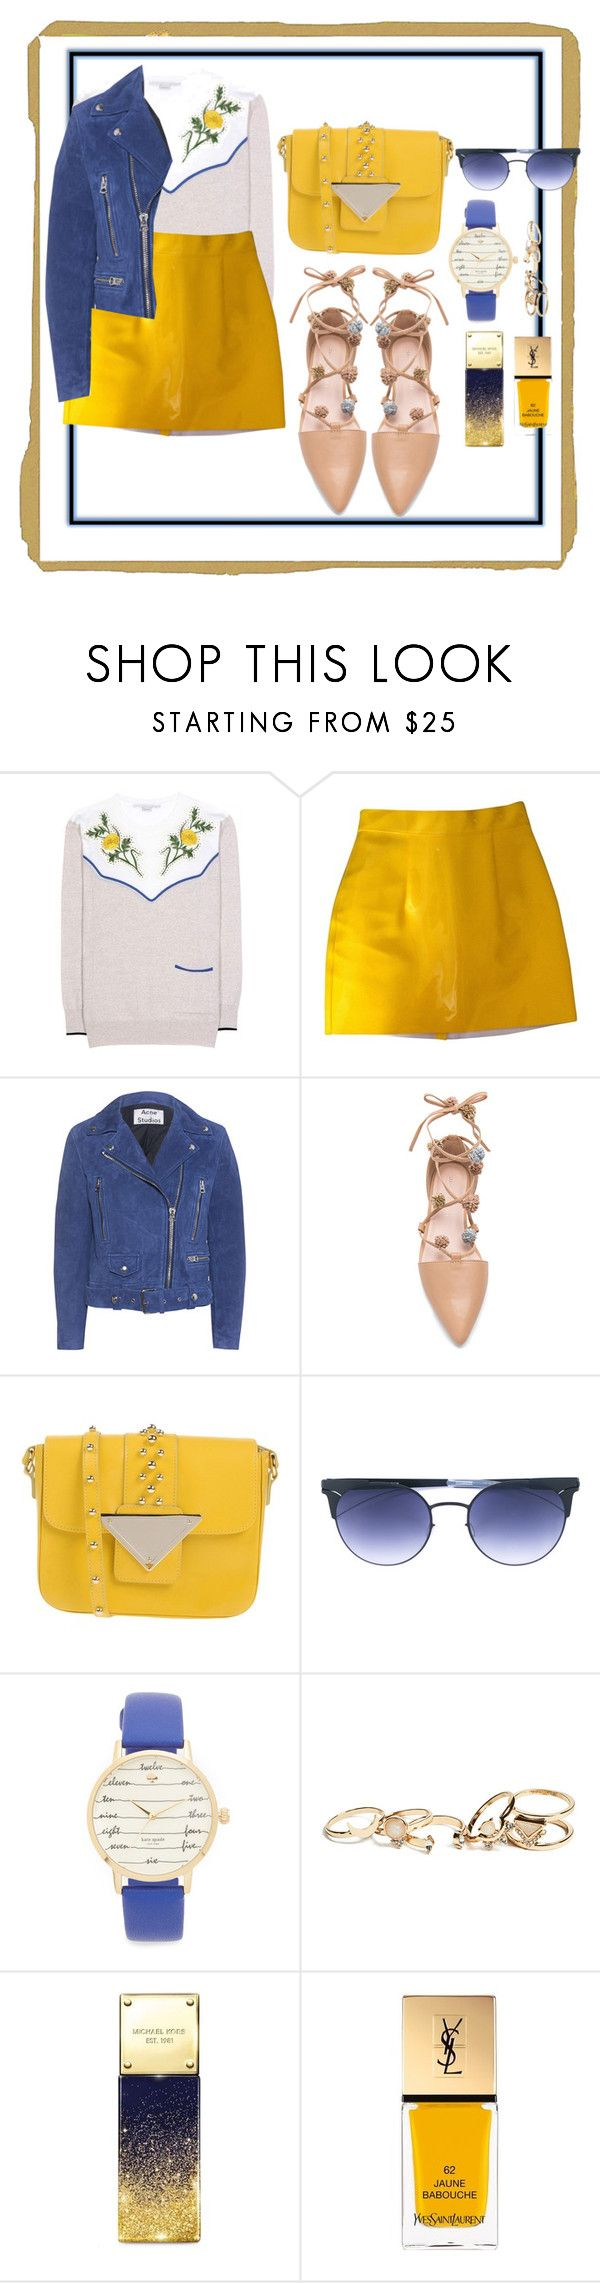 """Face Towards The Sun"" by tee-ray ❤ liked on Polyvore featuring STELLA McCARTNEY, American Apparel, Acne Studios, Loeffler Randall, Sara Battaglia, Mykita, Kate Spade, GUESS, Michael Kors and Yves Saint Laurent"